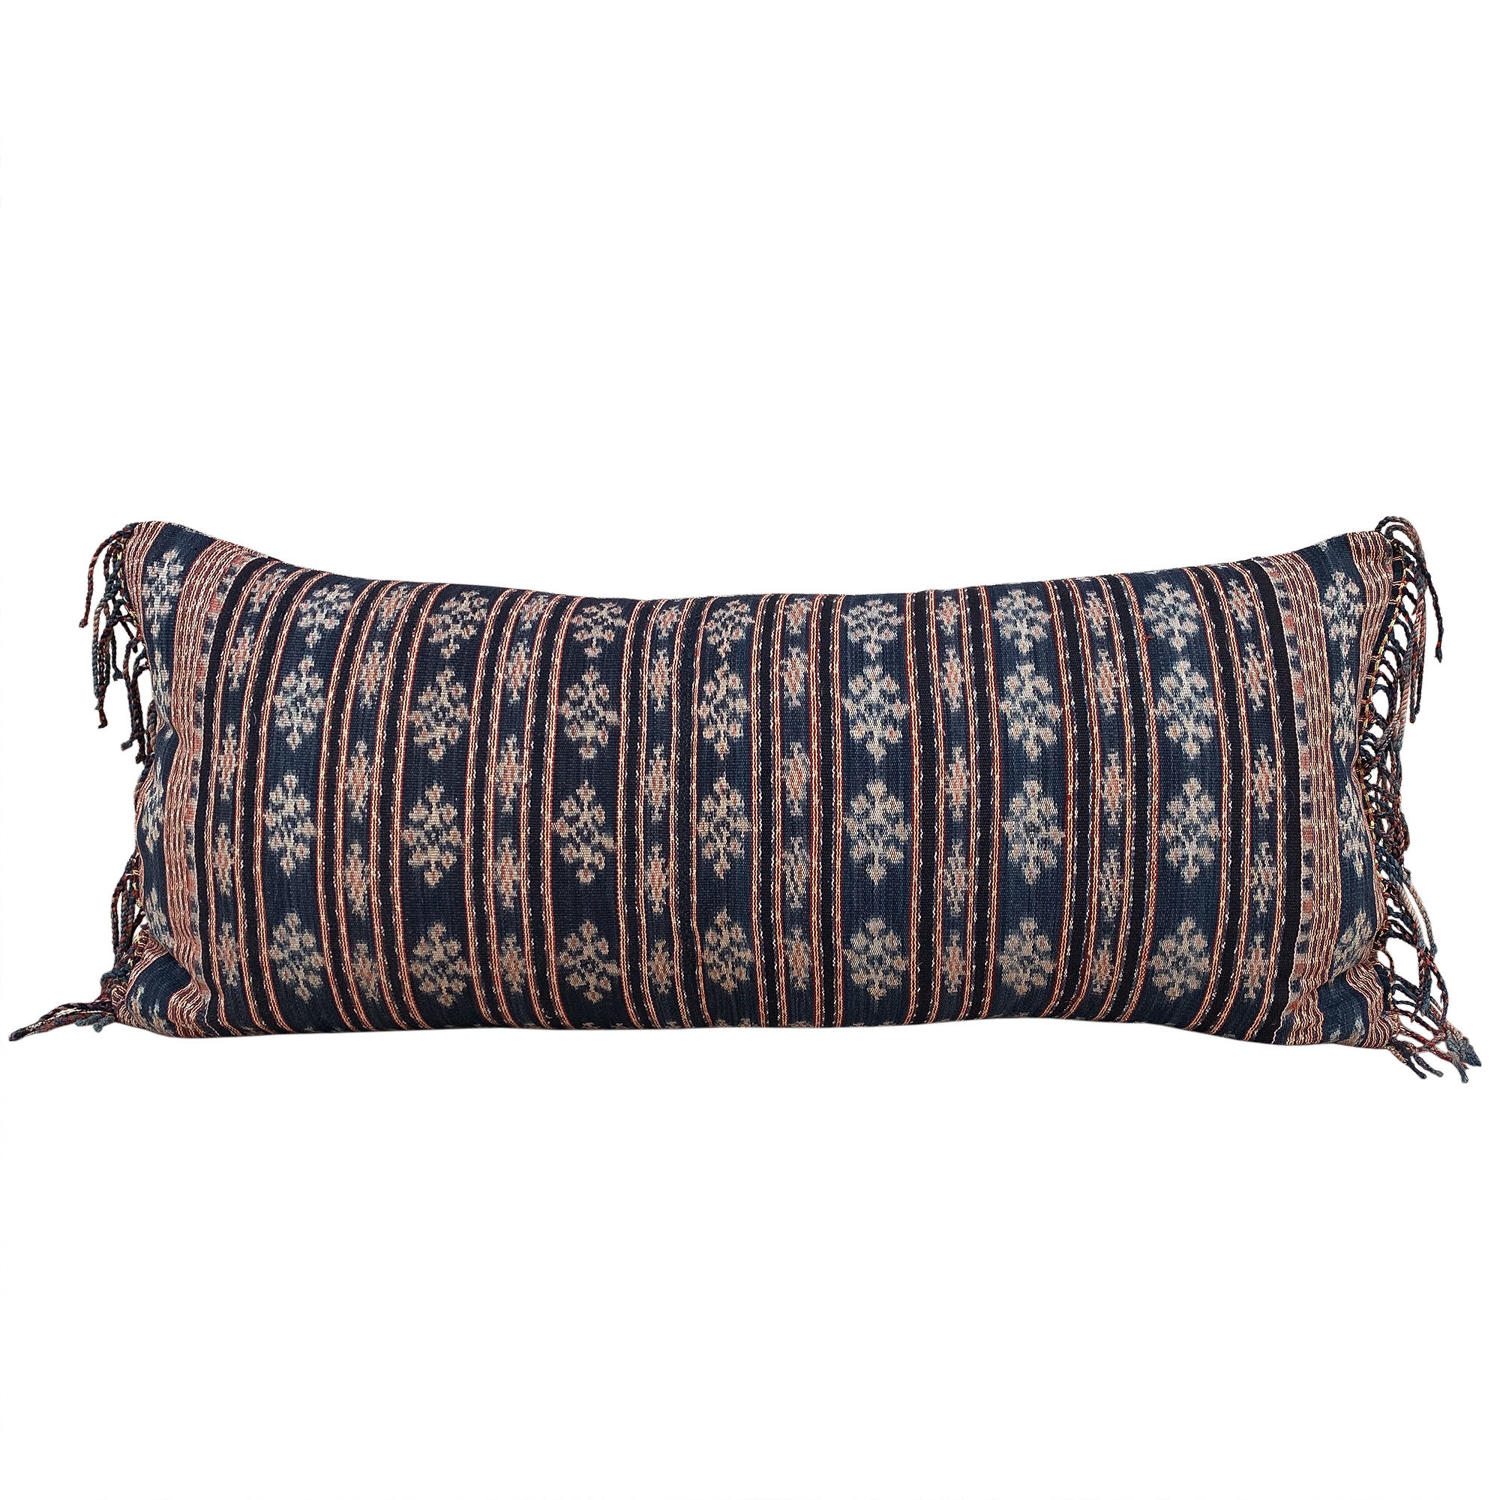 Long Indigo Savu Ikat Cushions